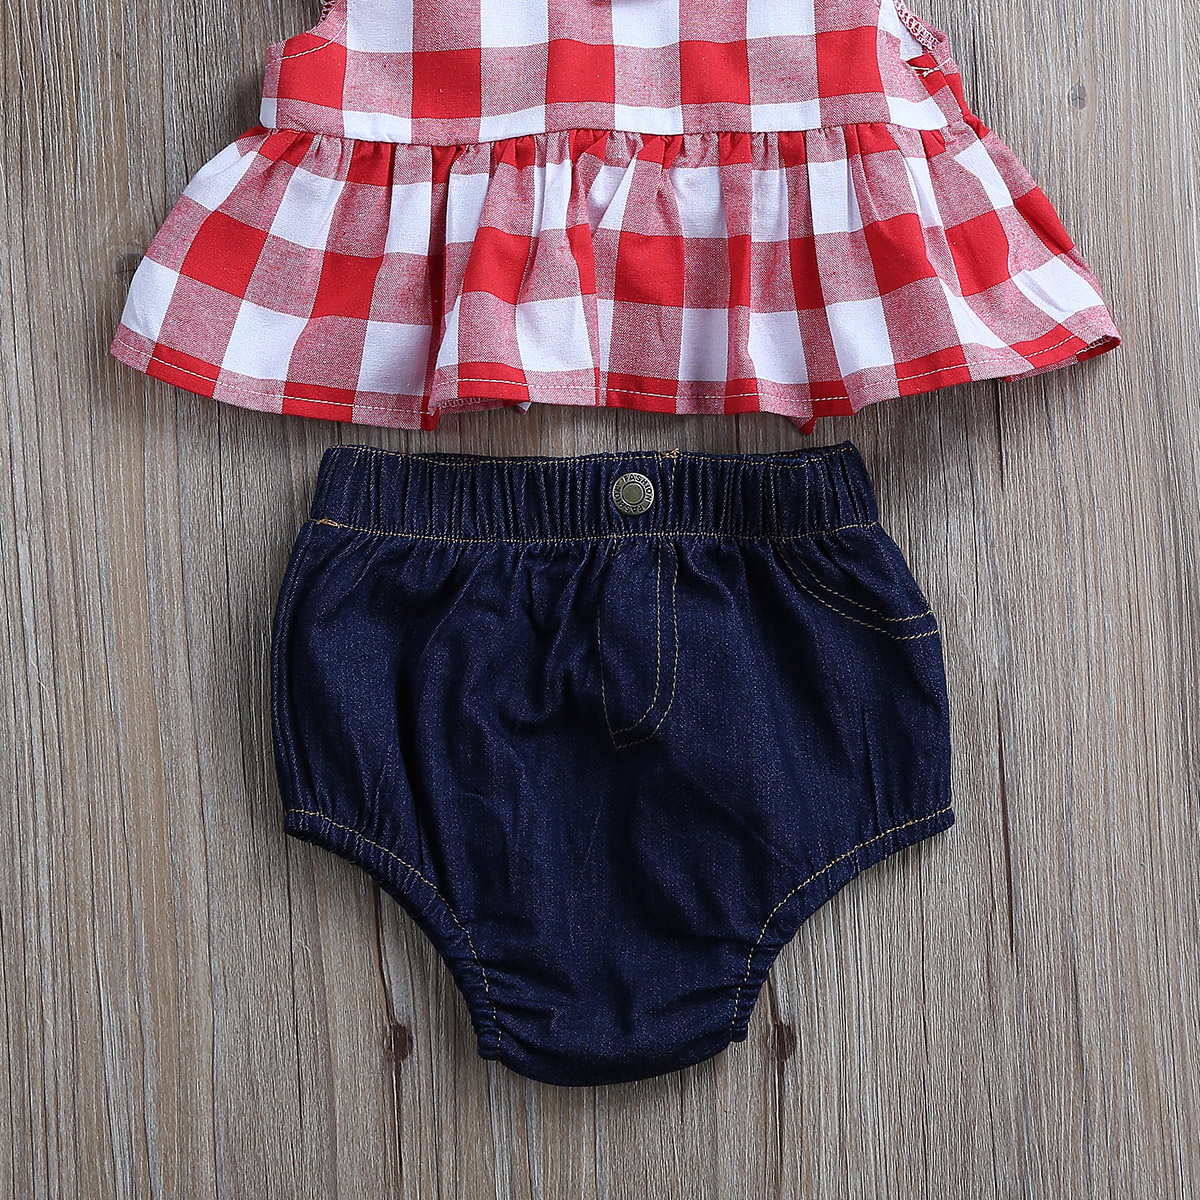 Tops-Sleeveless-Plaid-T-Shirts-Jeans-Shorts-Headband-Kids-Clothing-Outfits-Infant-Kids-Baby-Girls-Clothes-Sets-Outfit-Sleeveless-4